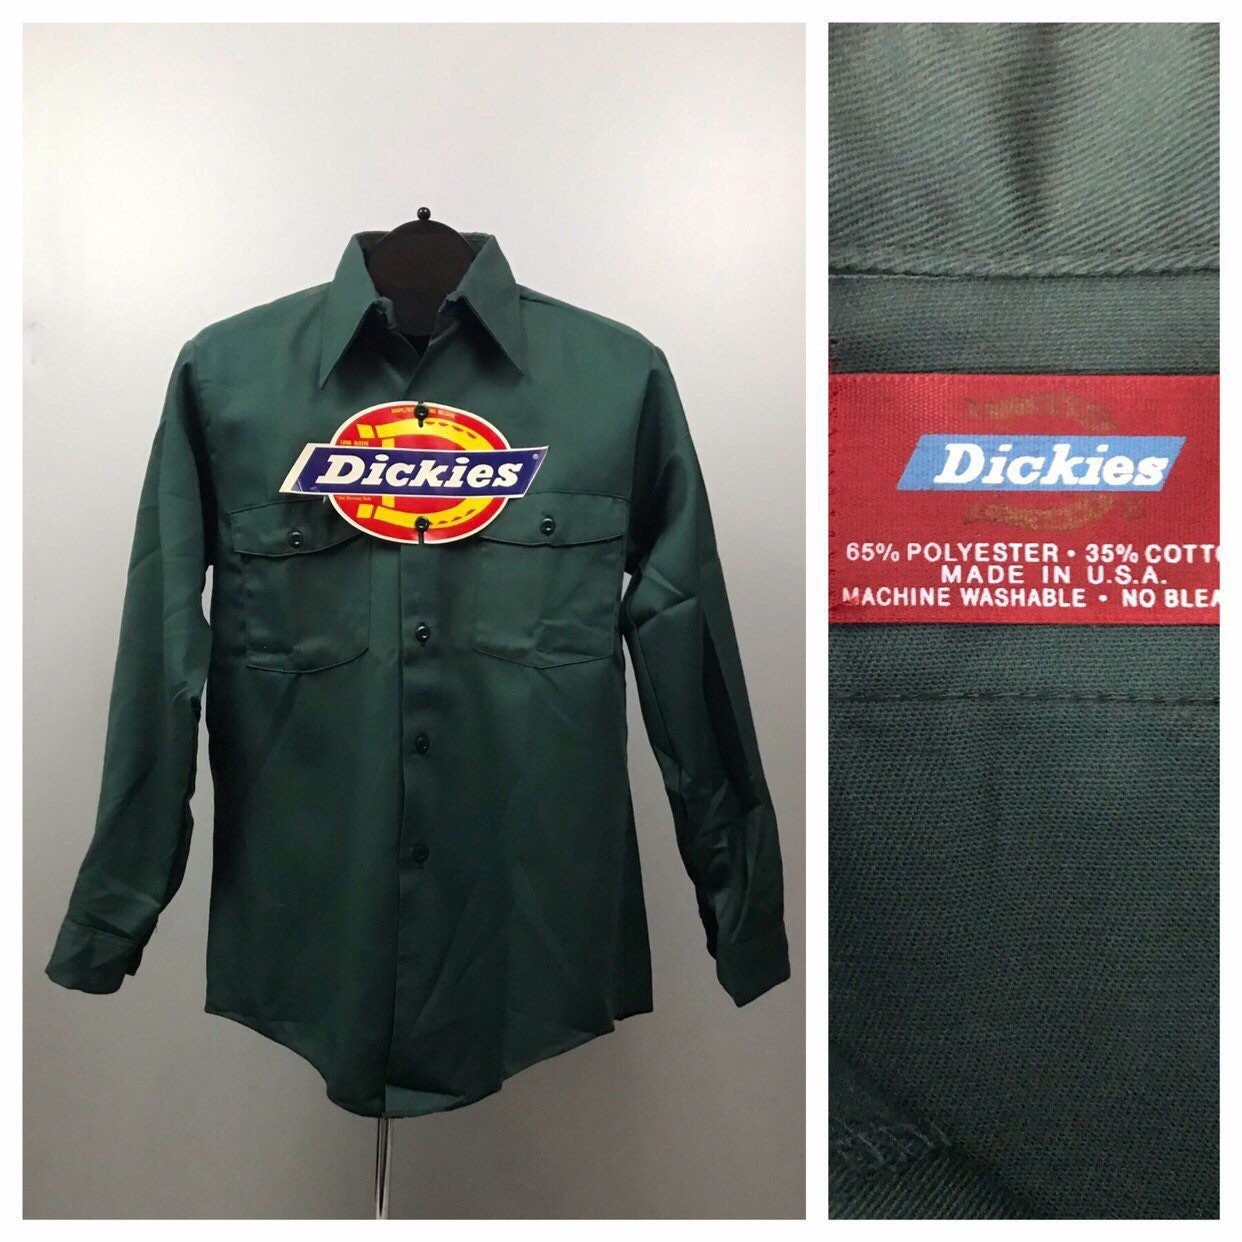 1970s Mens Shirt Styles – Vintage 70s Shirts for Guys Vintage Dickies Button Down Work Shirt80S Nos Green Wear Unworn Mens Small $22.50 AT vintagedancer.com